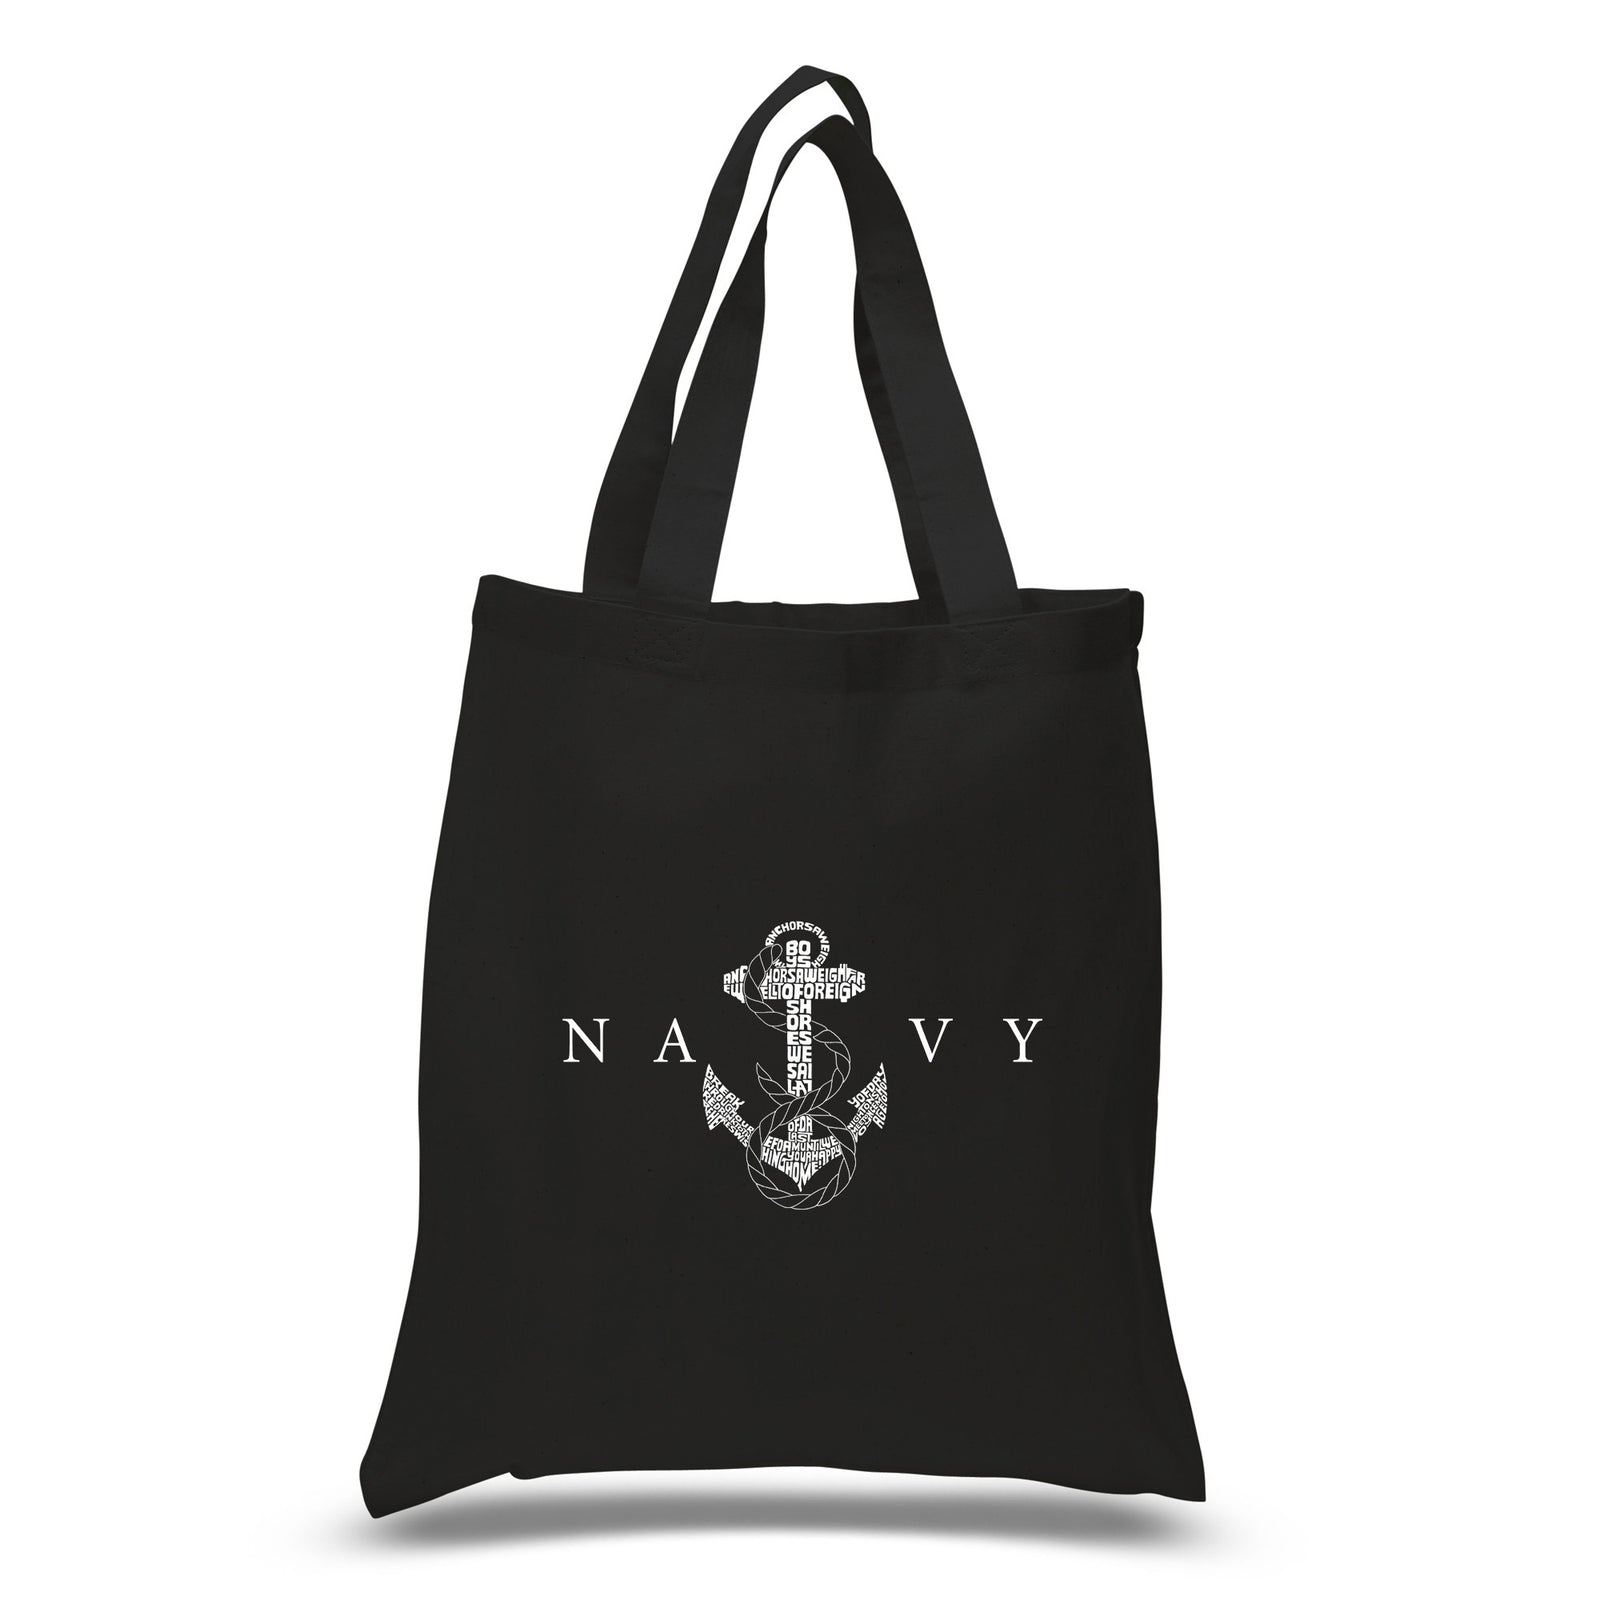 Small Tote Bag - LYRICS TO ANCHORS AWEIGH